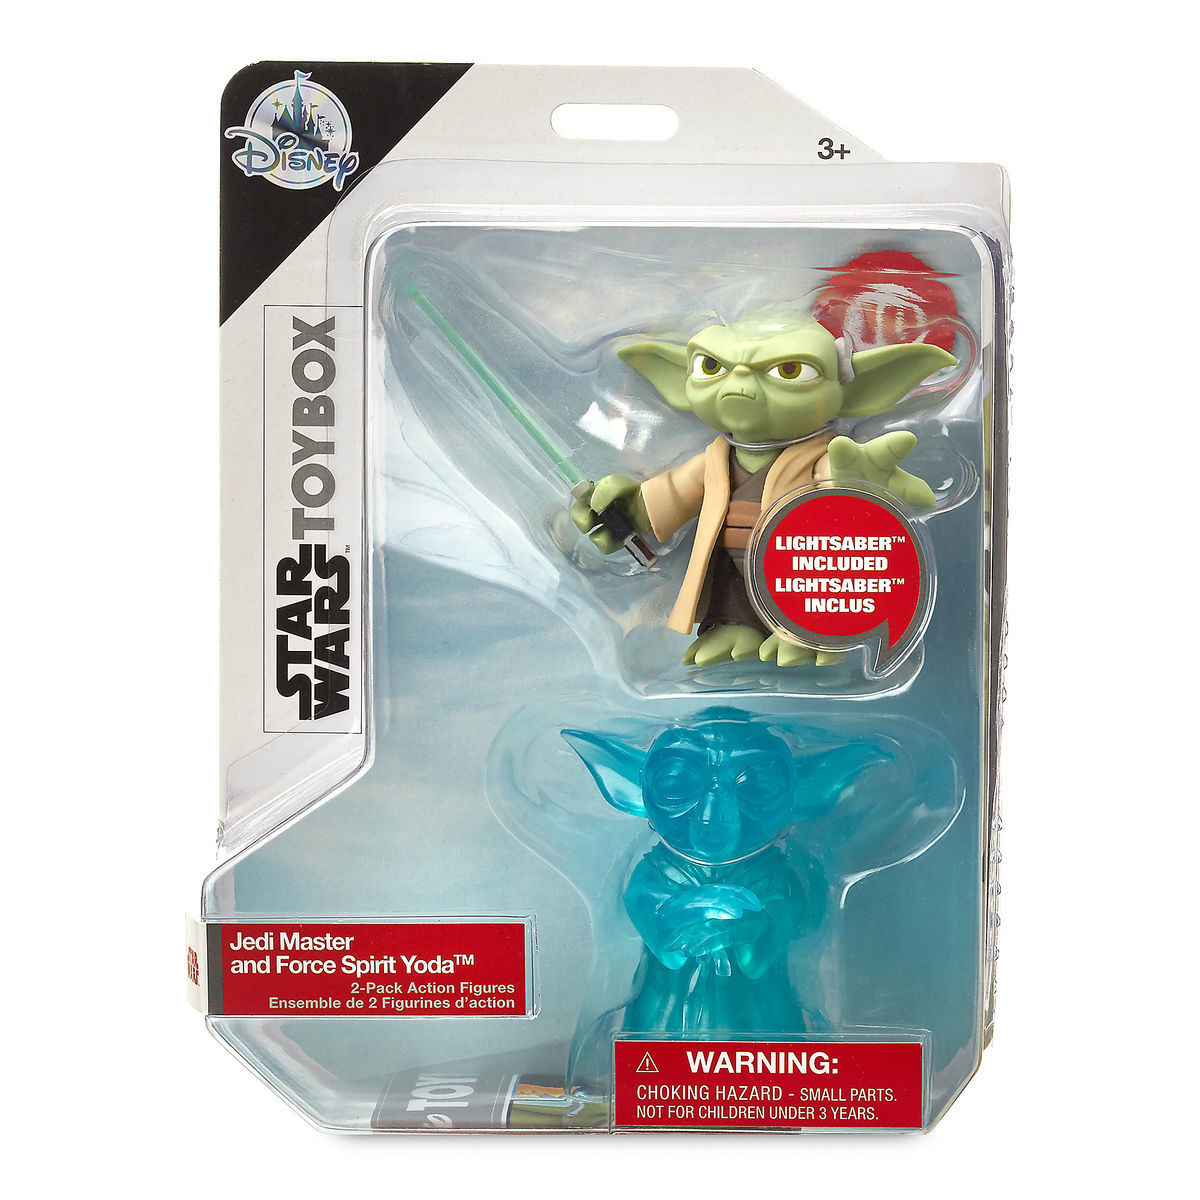 Disney Store Exclusive Spider-Man With Spider Mobile Playset, Hulkbuster Deluxe & Star Wars Yoda Figures Available Now